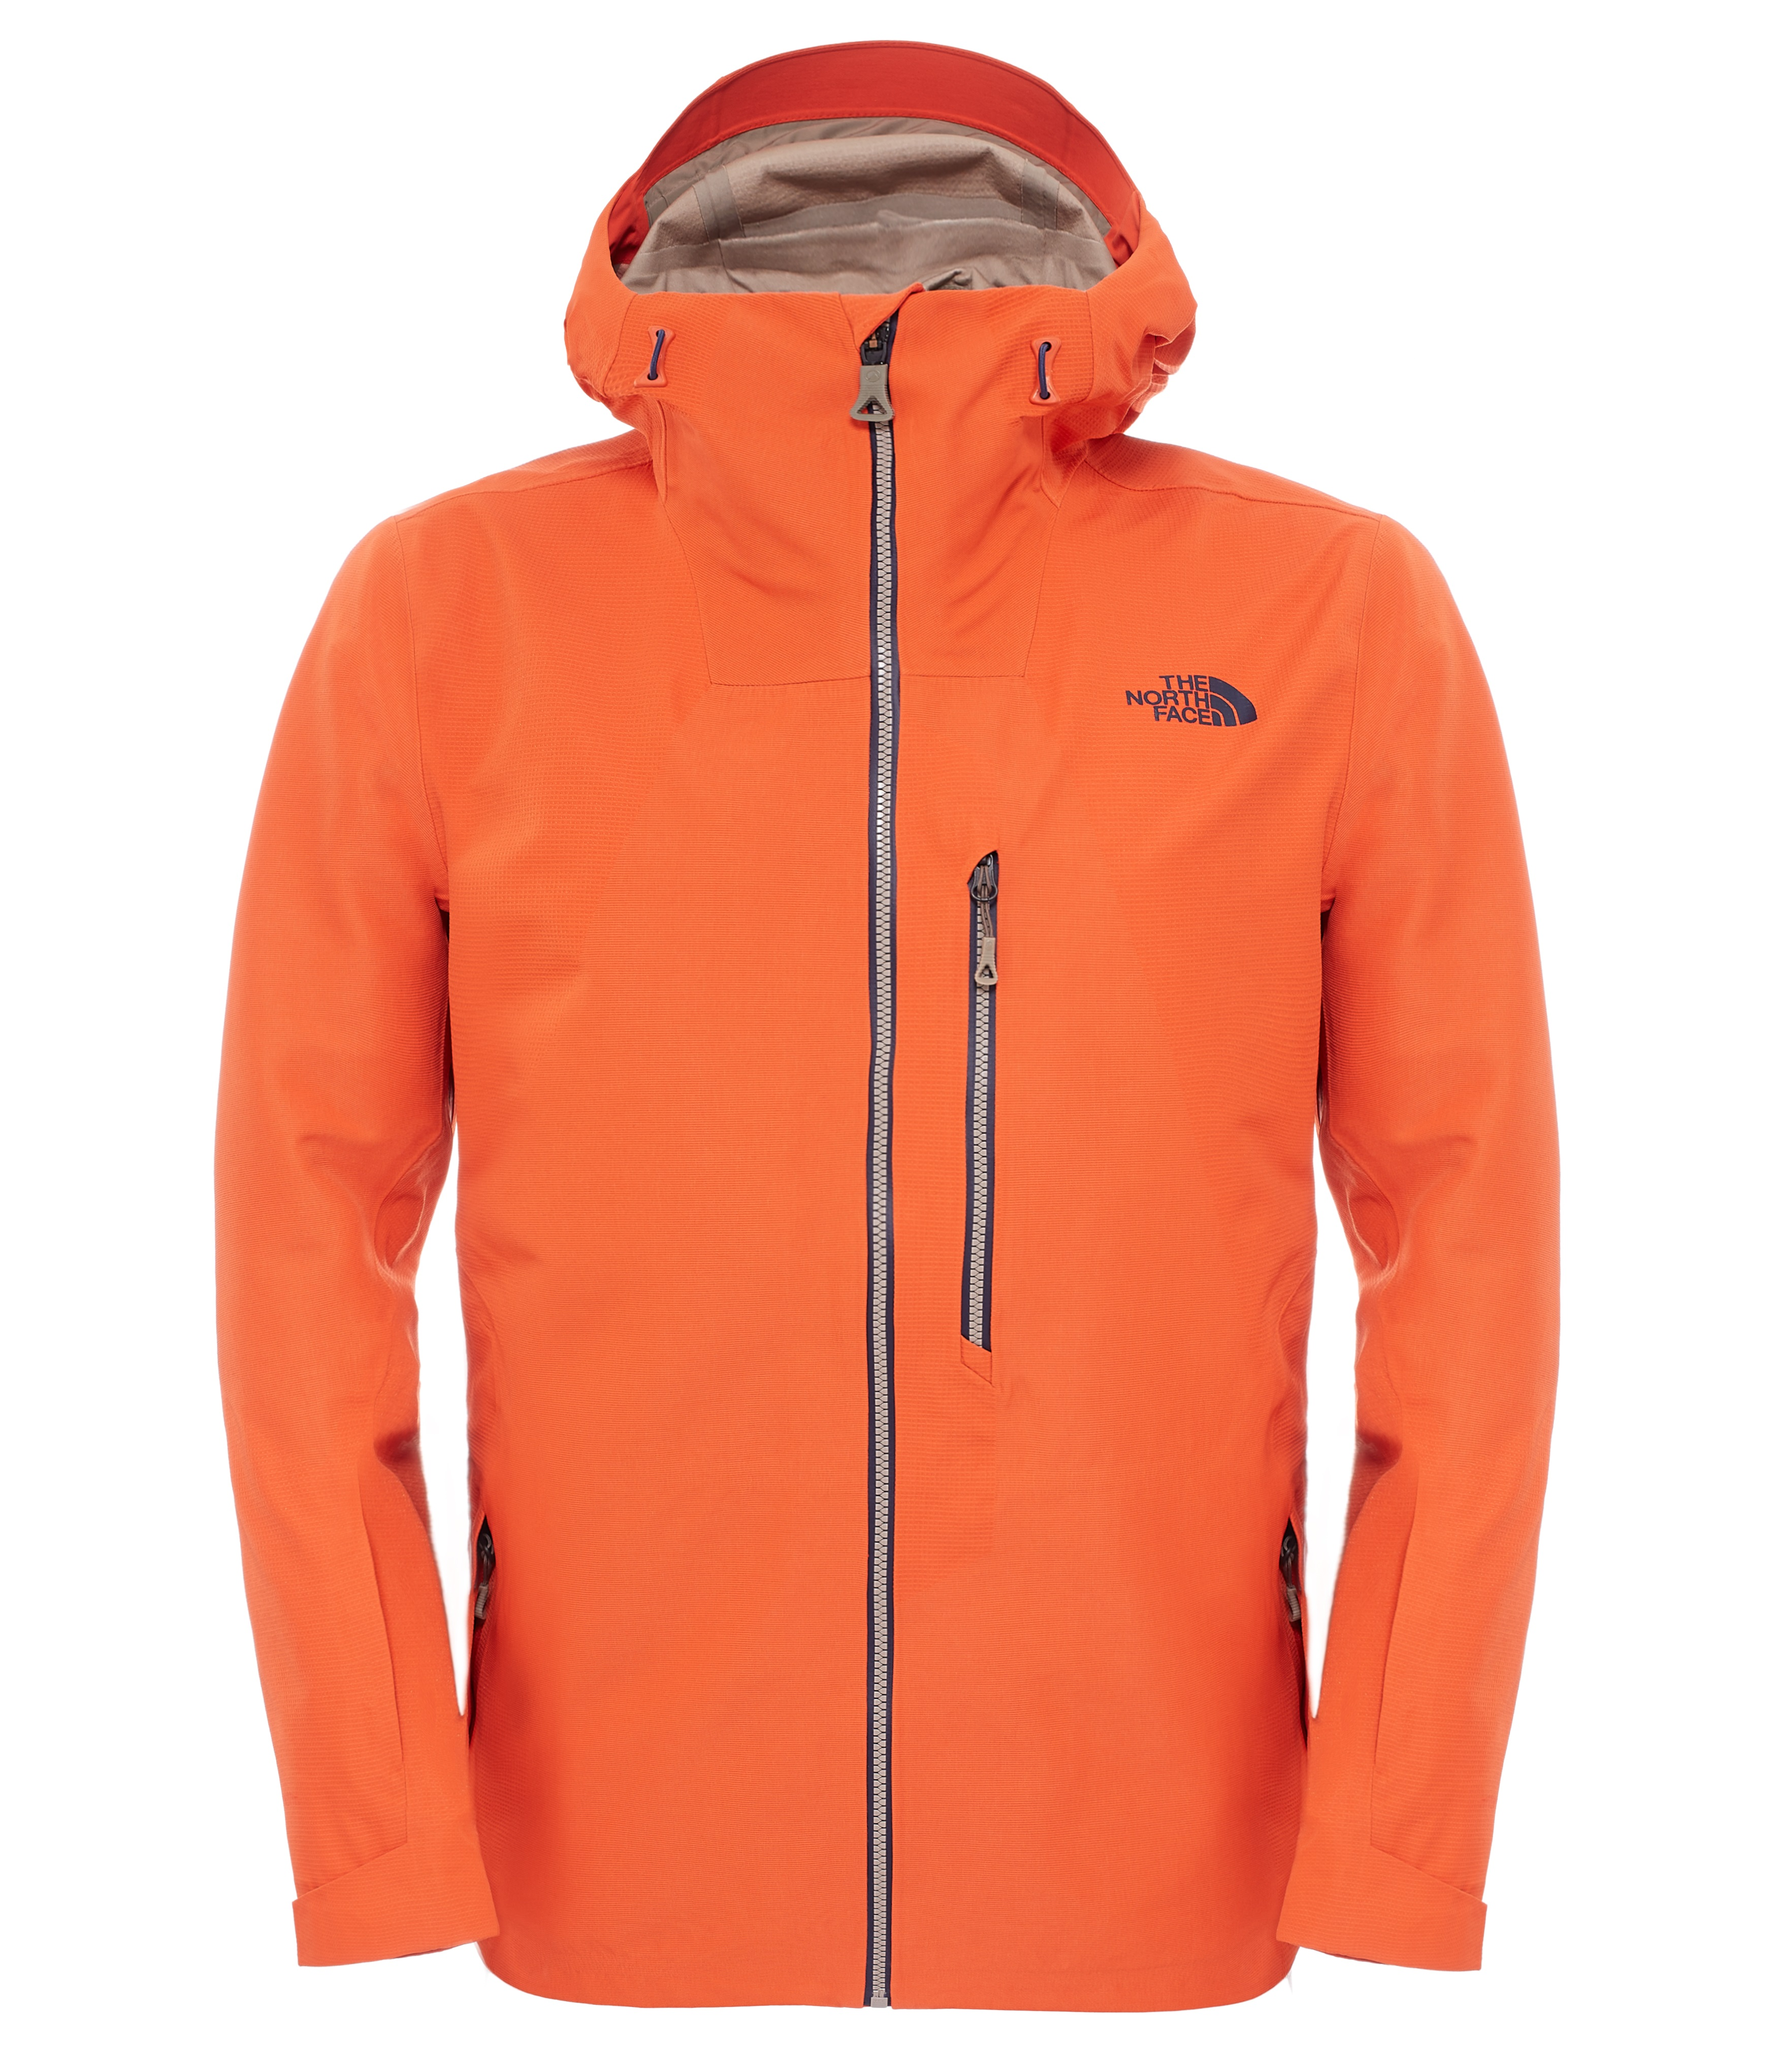 The North Face'in Red Dot ödülü kazanan ürünü Fuse Form